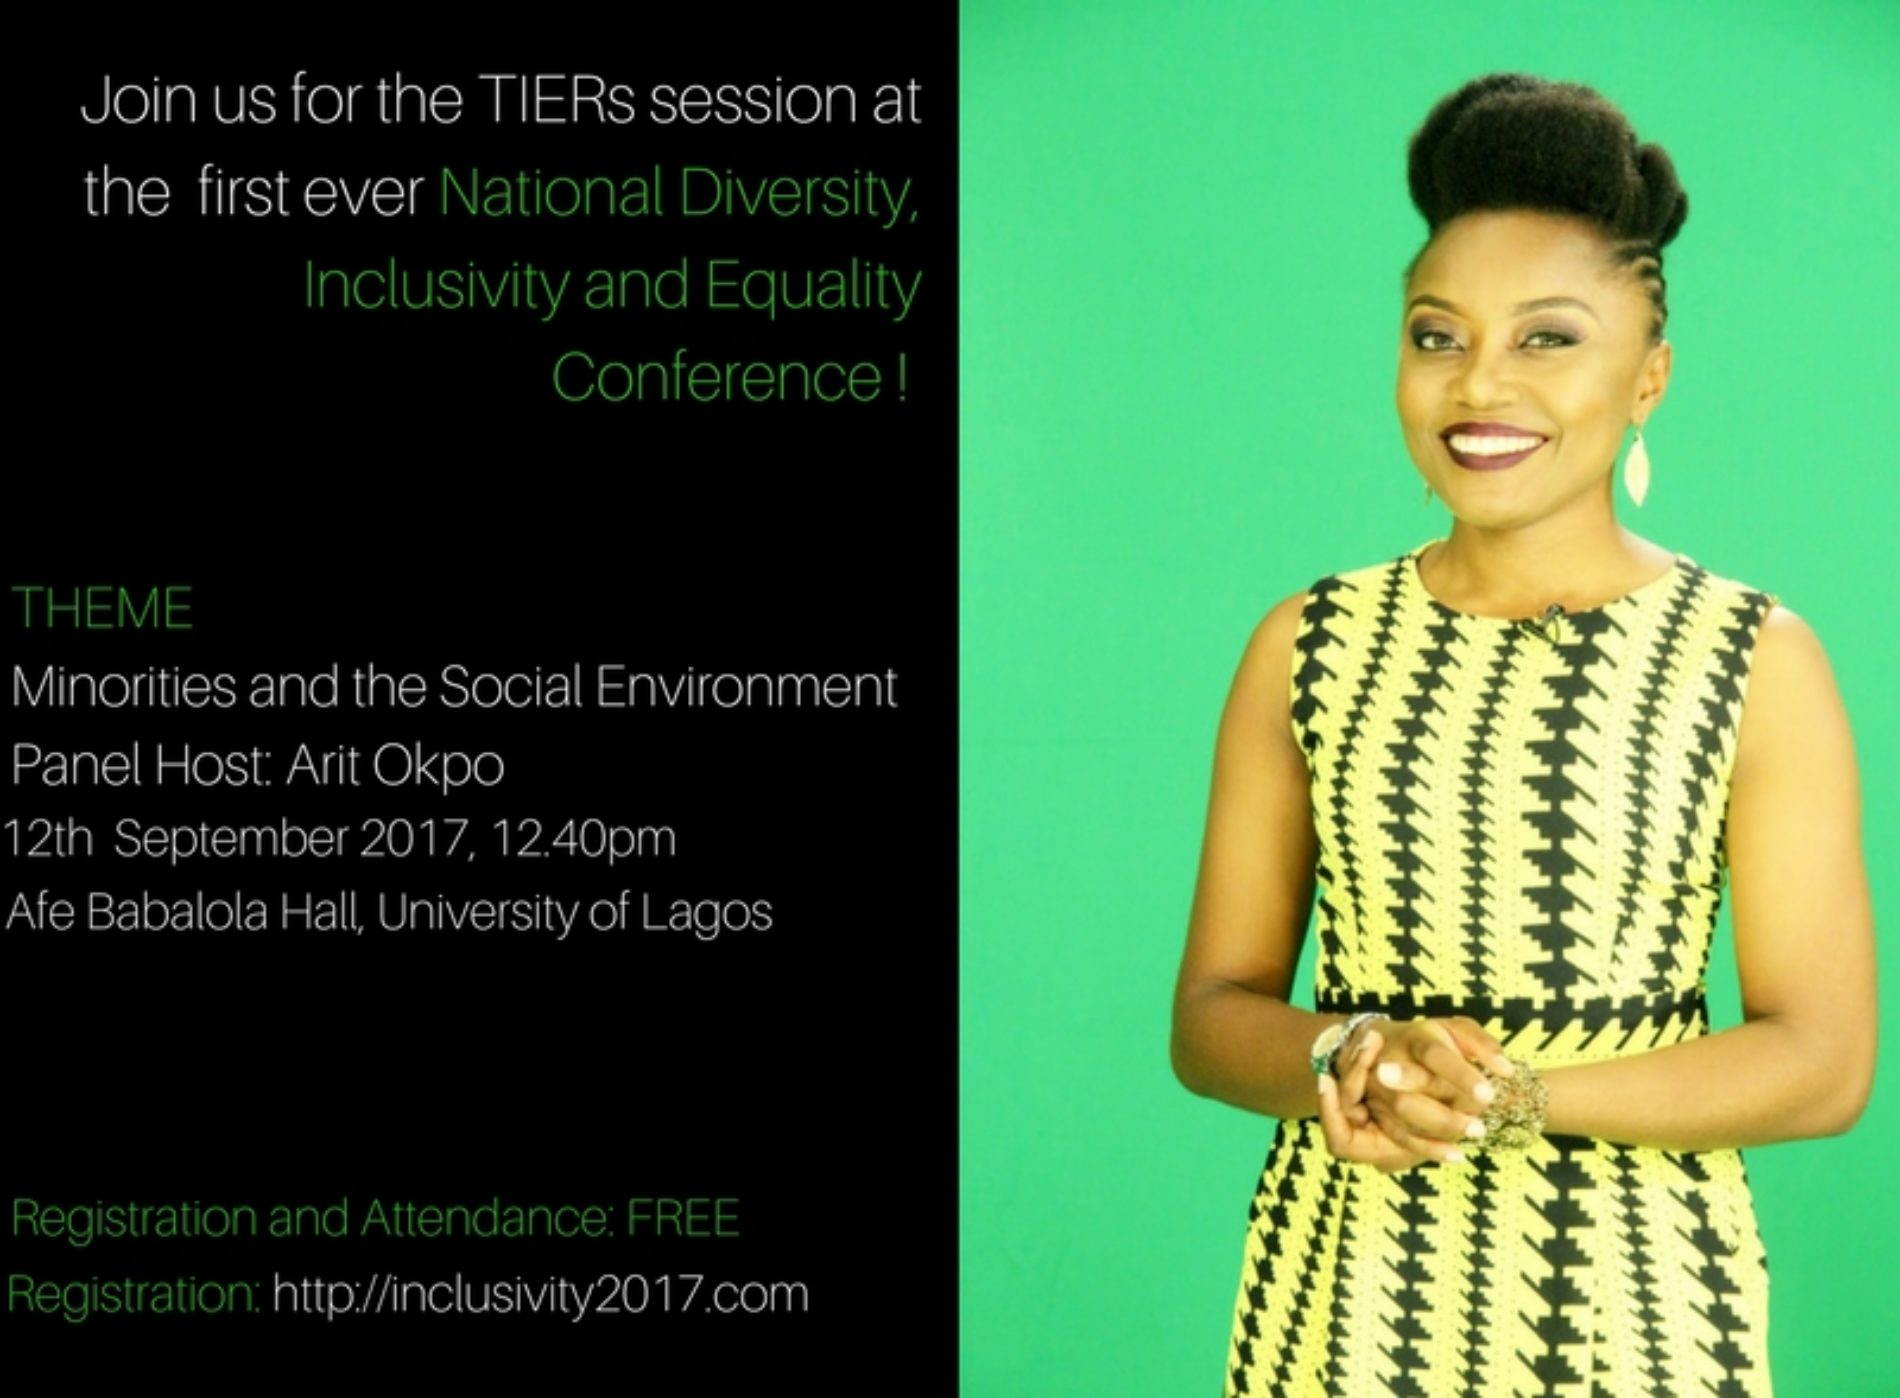 TIERs is partnering with first ever national conference on Diversity, Inclusivity and Equality